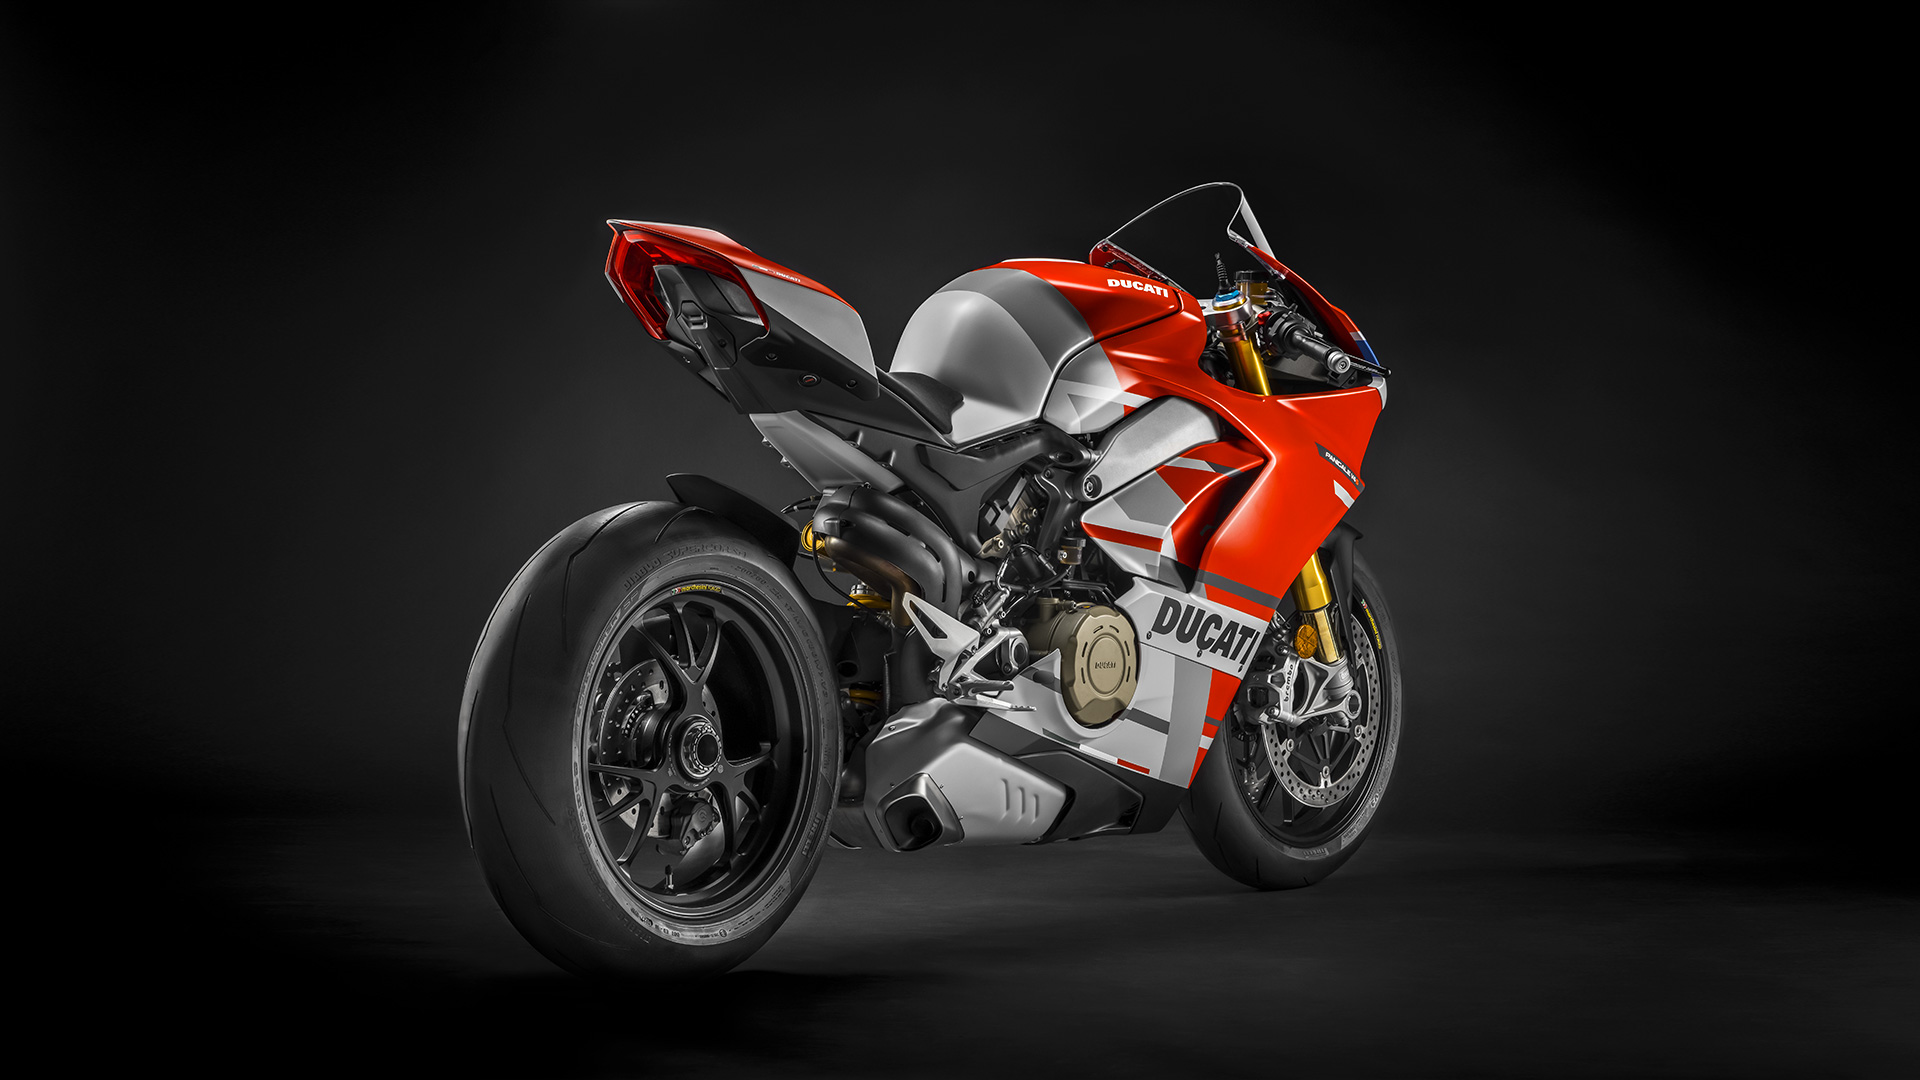 Panigale-V4S-Corse-MY19-04-Gallery-1920x1080